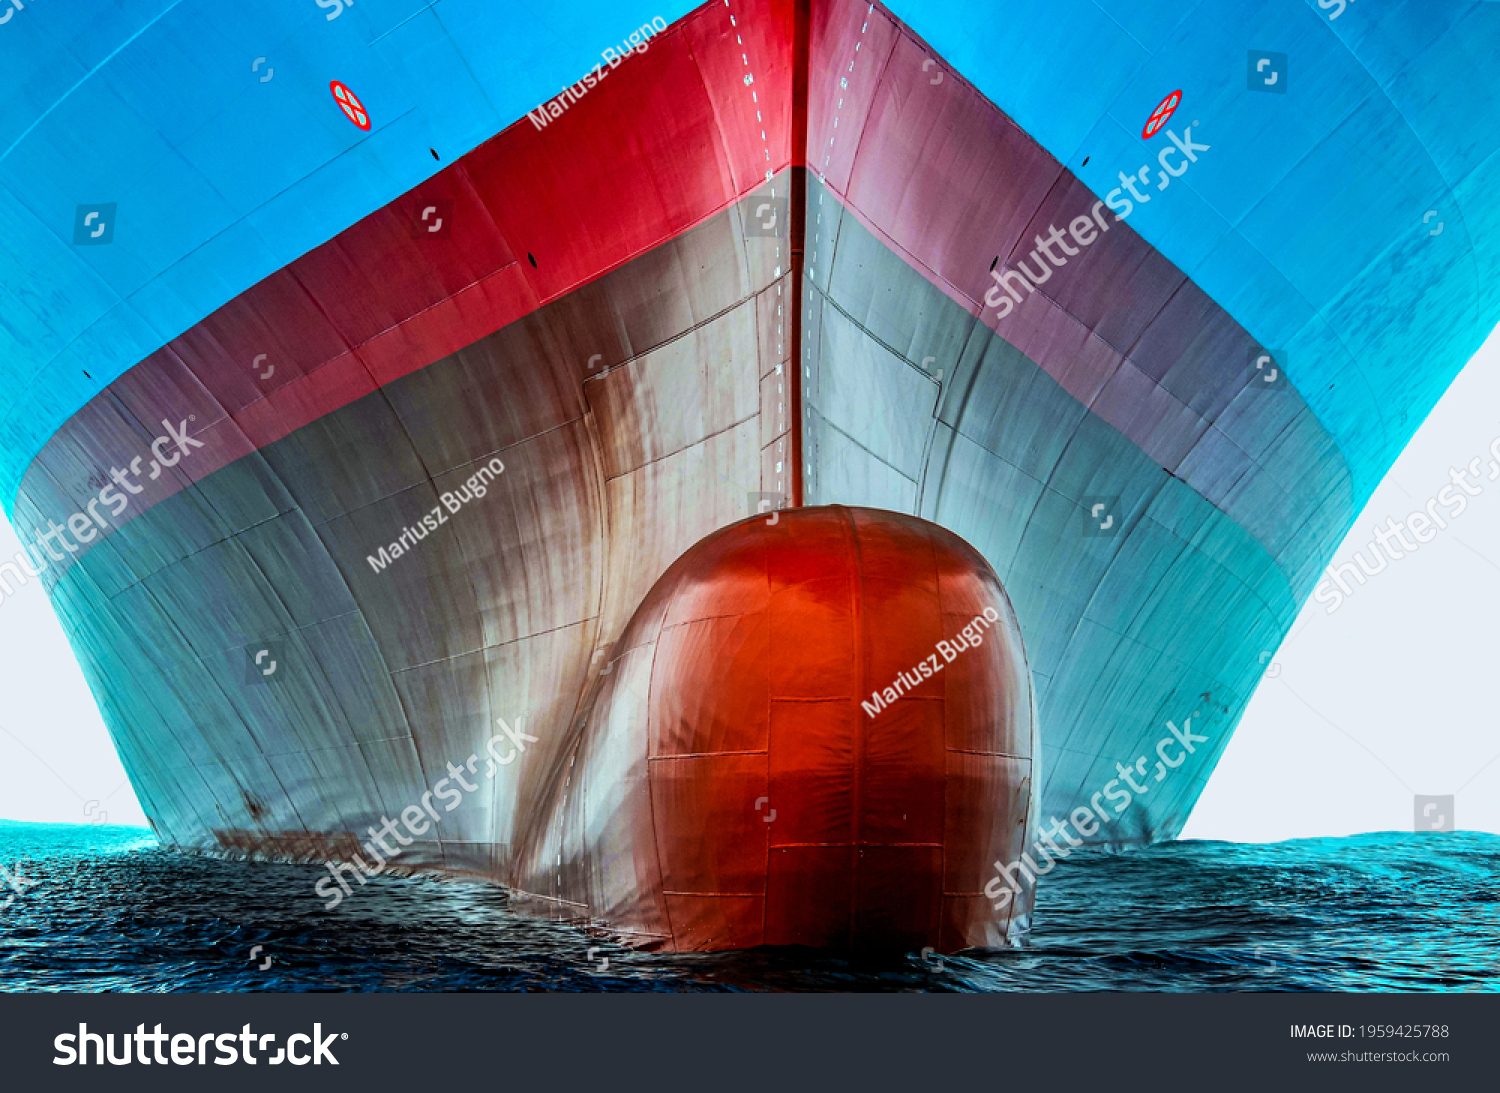 Front view of the large cargo ship bulbous bow, she is freshly painted.   #1959425788